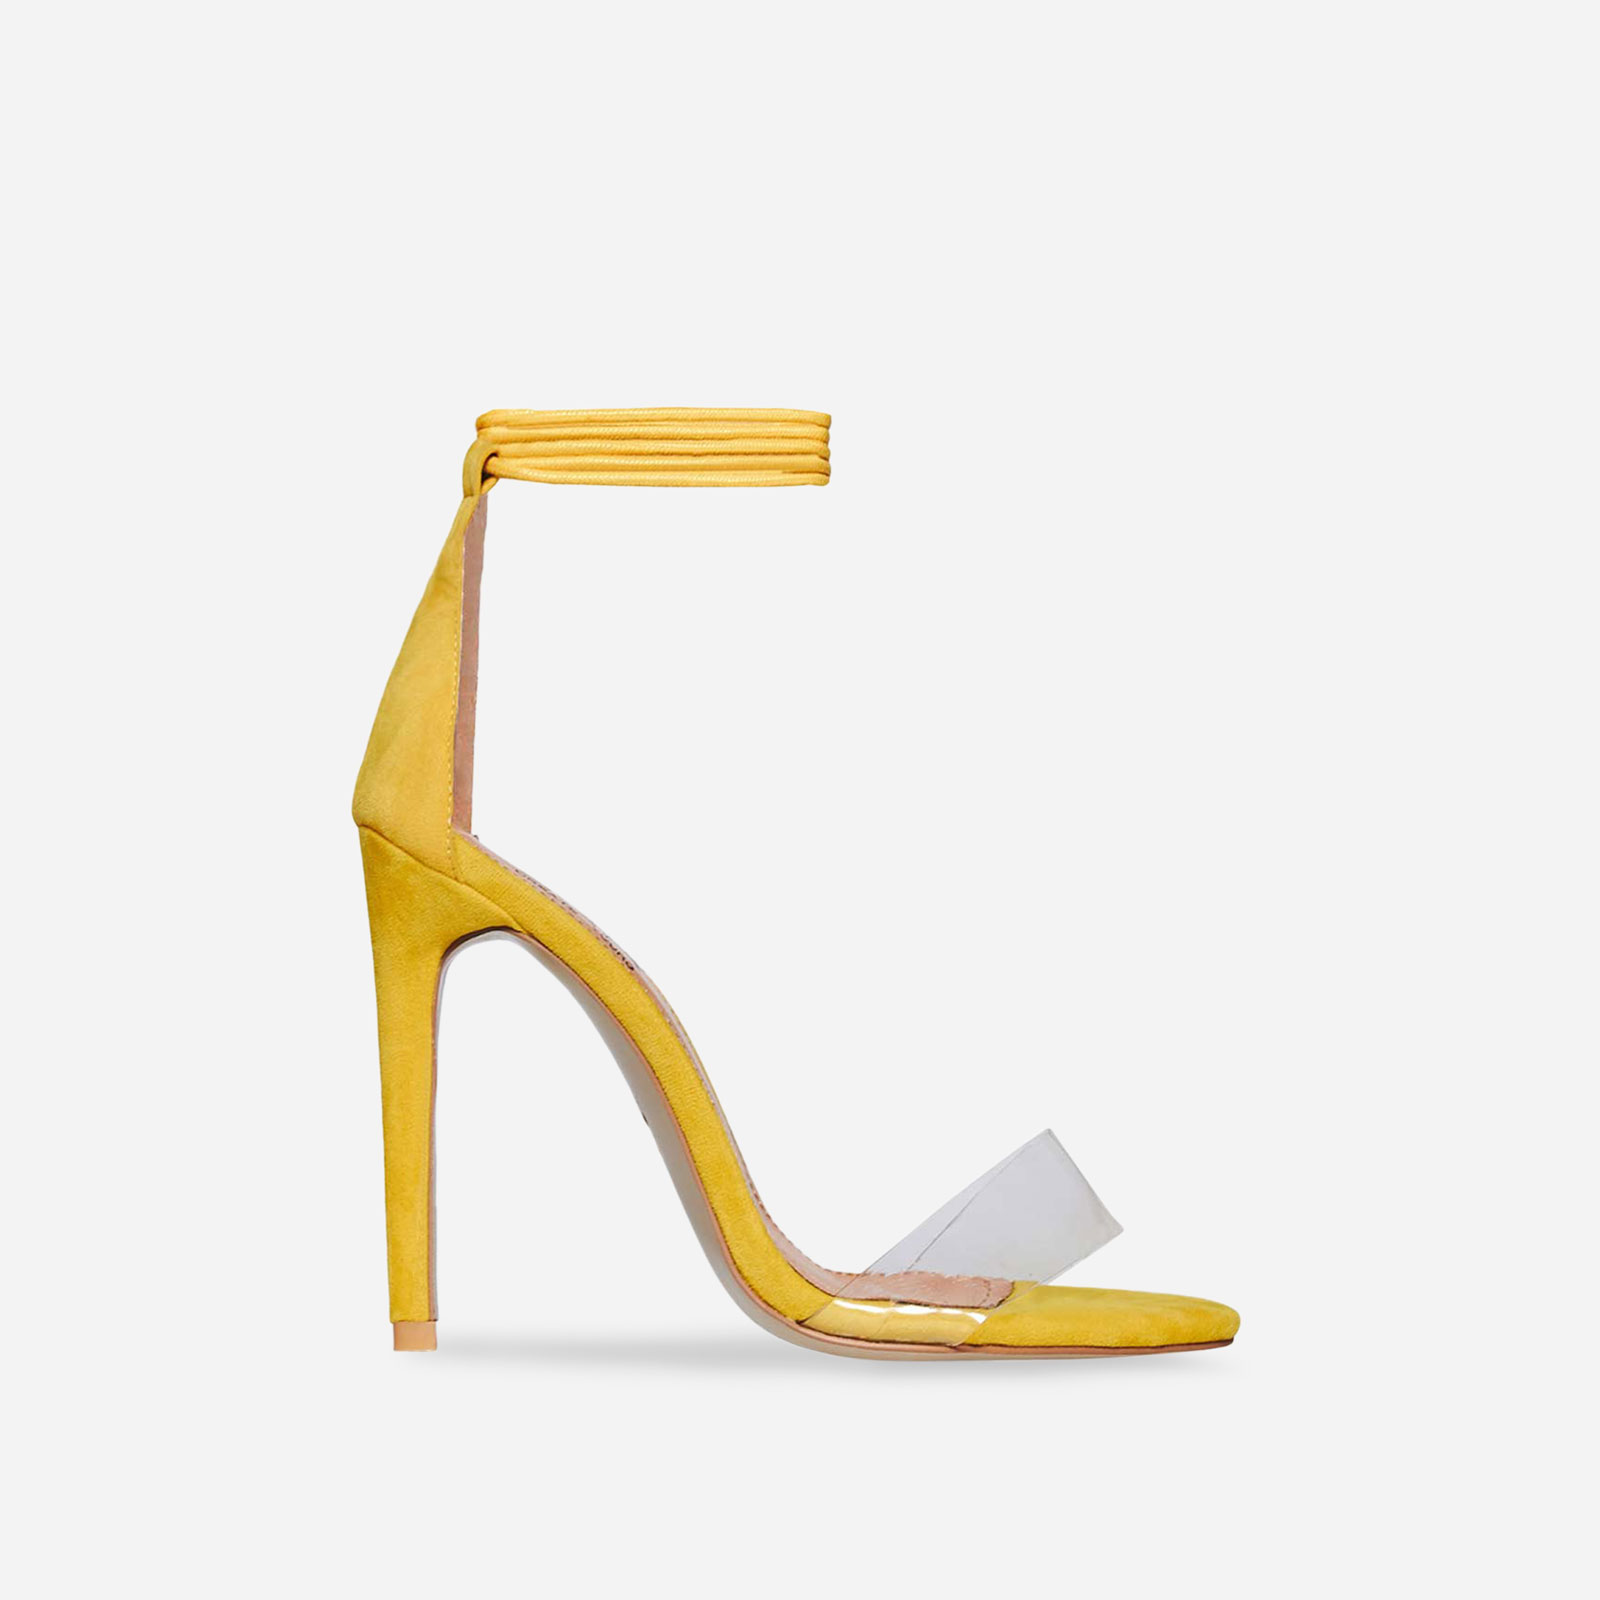 Perrie Lace Up Heel In Yellow Faux Suede Image 1